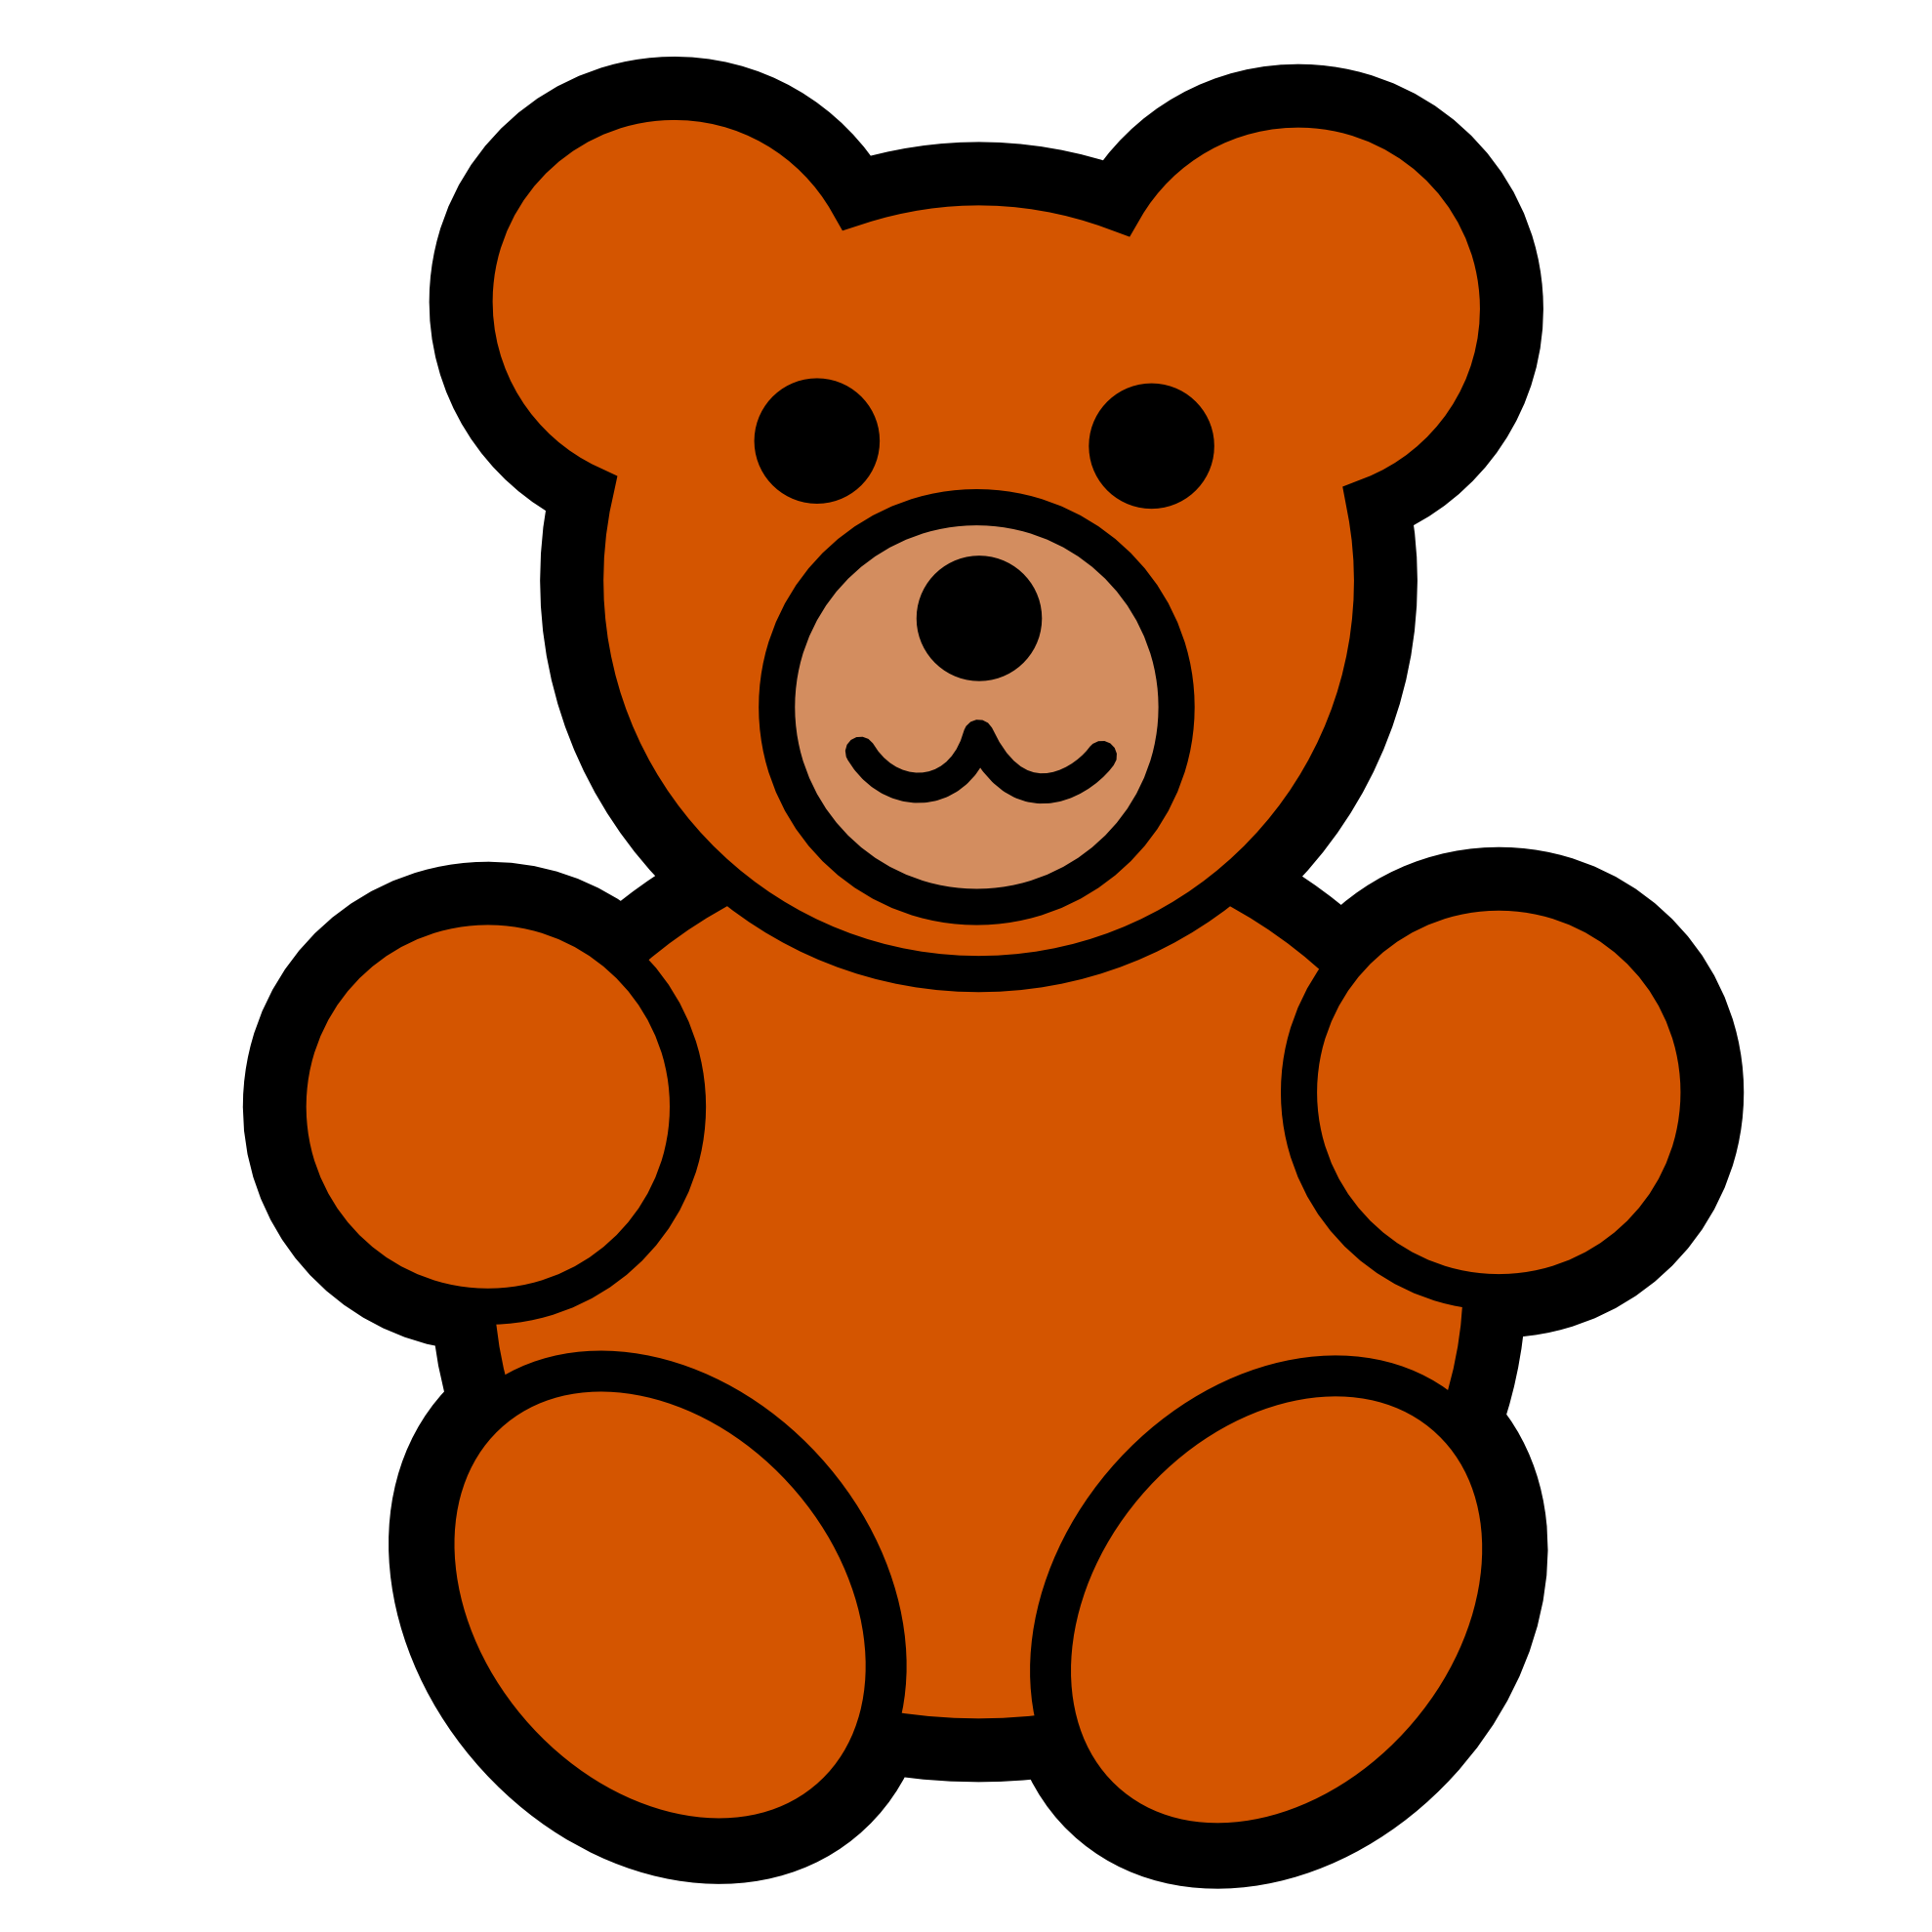 Drawing crafts teddy bear. Christmas clipart at getdrawings